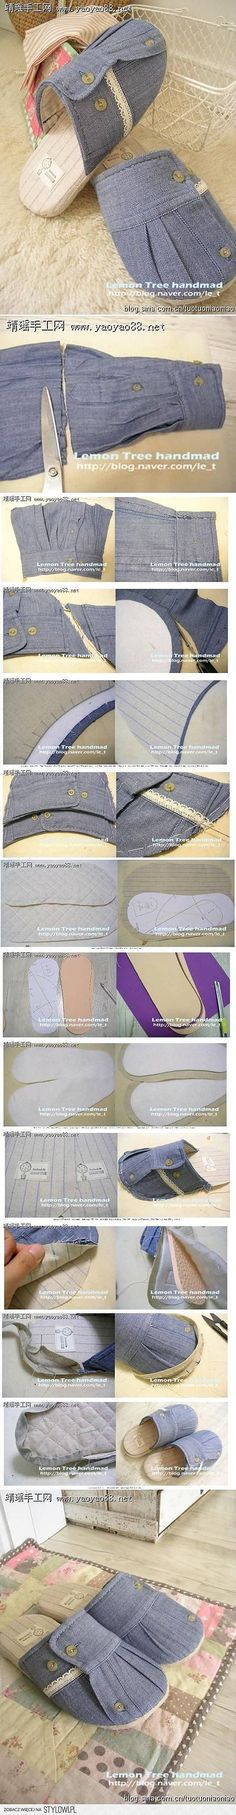 DIY Old Clothes Cuff Slipper, que hermosas pantuflas Fabric Crafts, Sewing Crafts, Sewing Projects, Diy Projects, Old Clothes, Sewing Clothes, Sewing Hacks, Sewing Tutorials, Free Tutorials